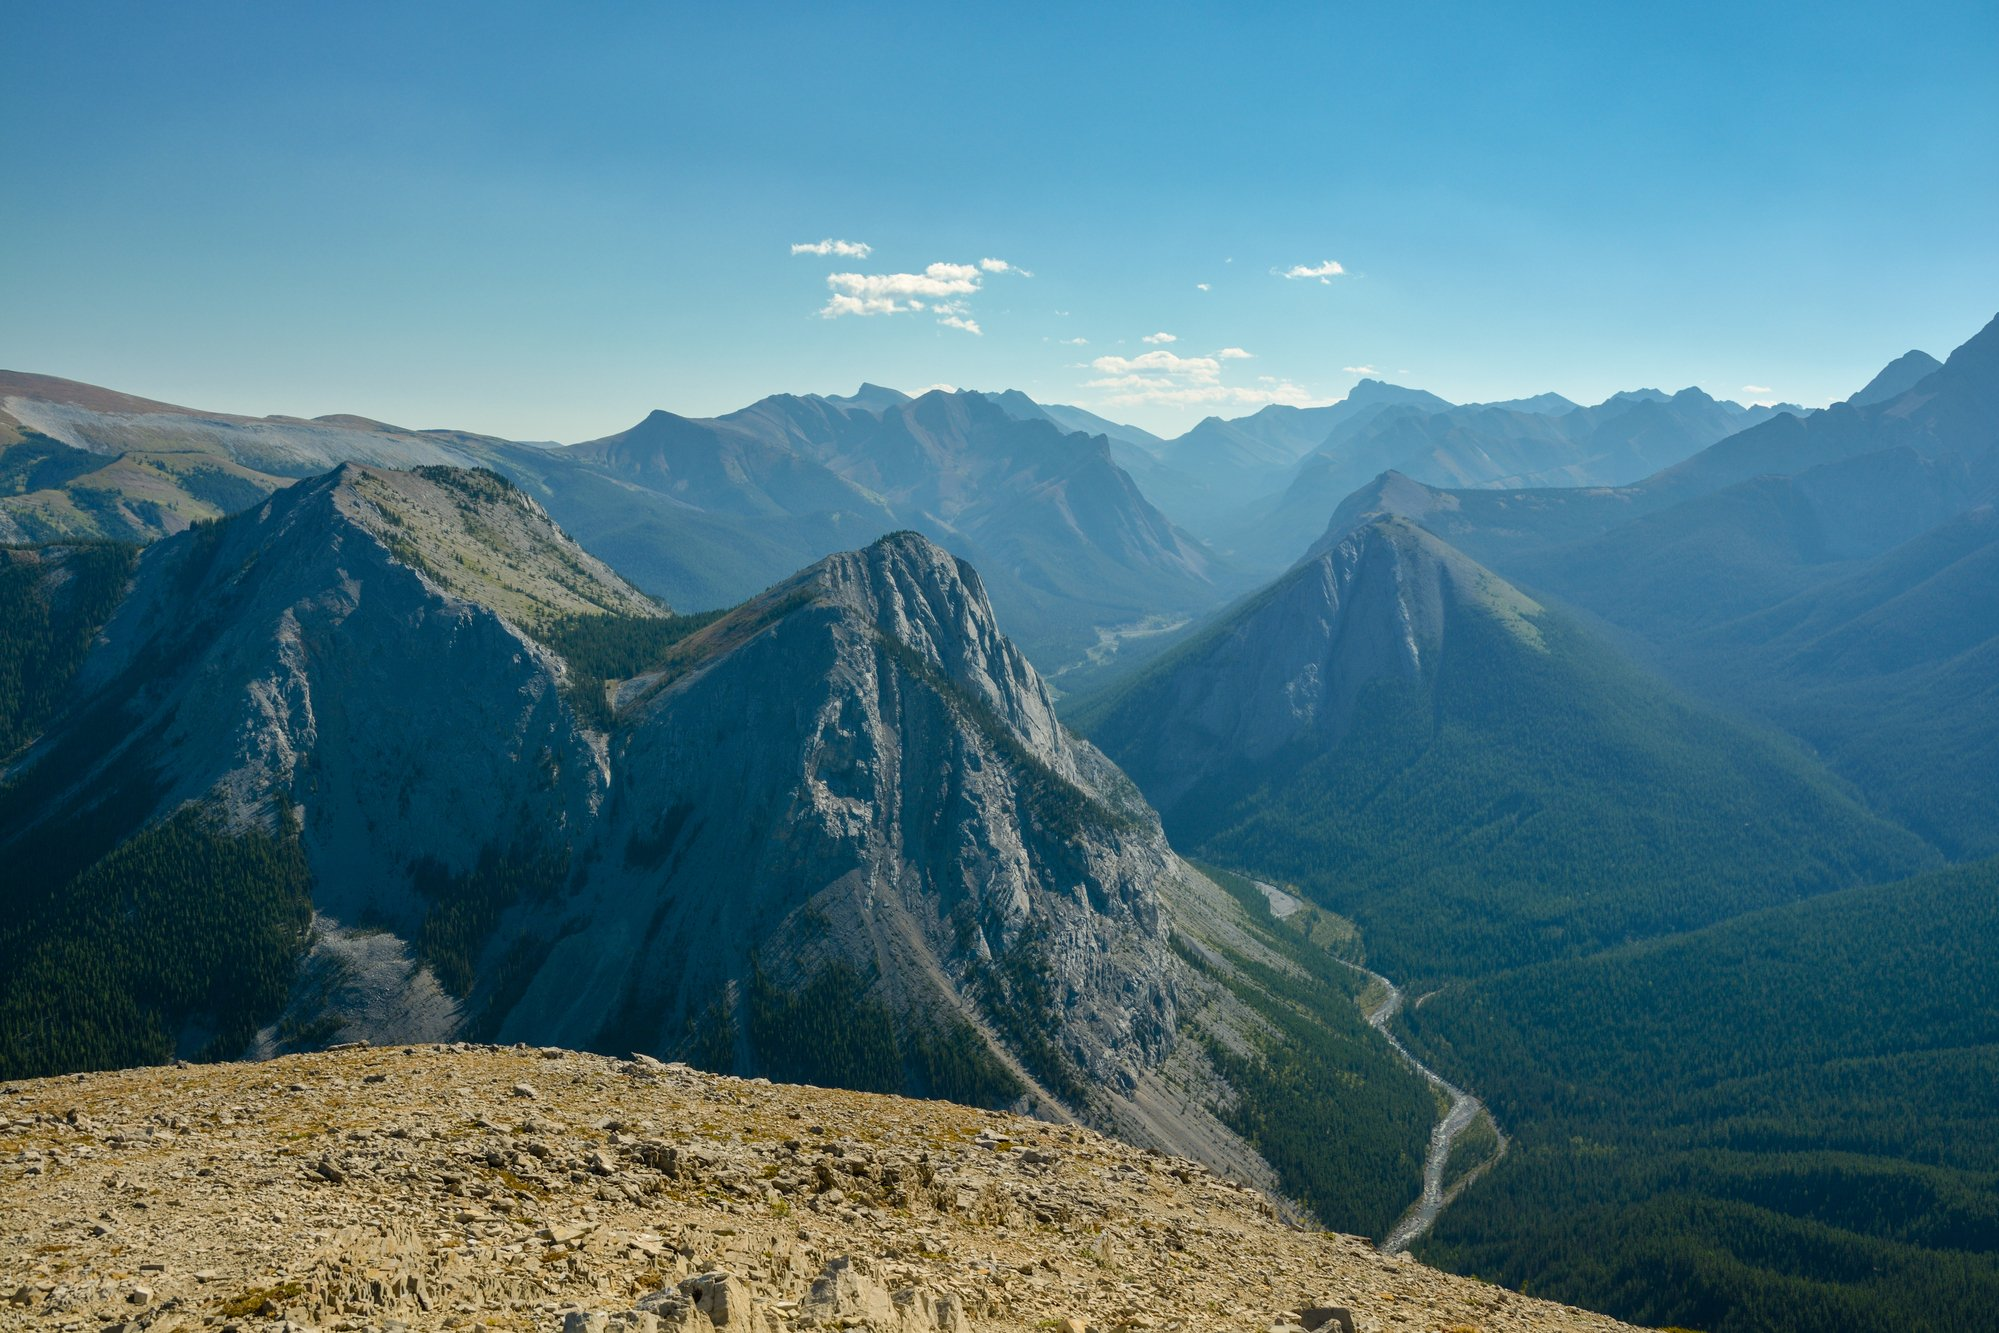 Views from the top of the Sulphur Skyline trail - Jasper National Park